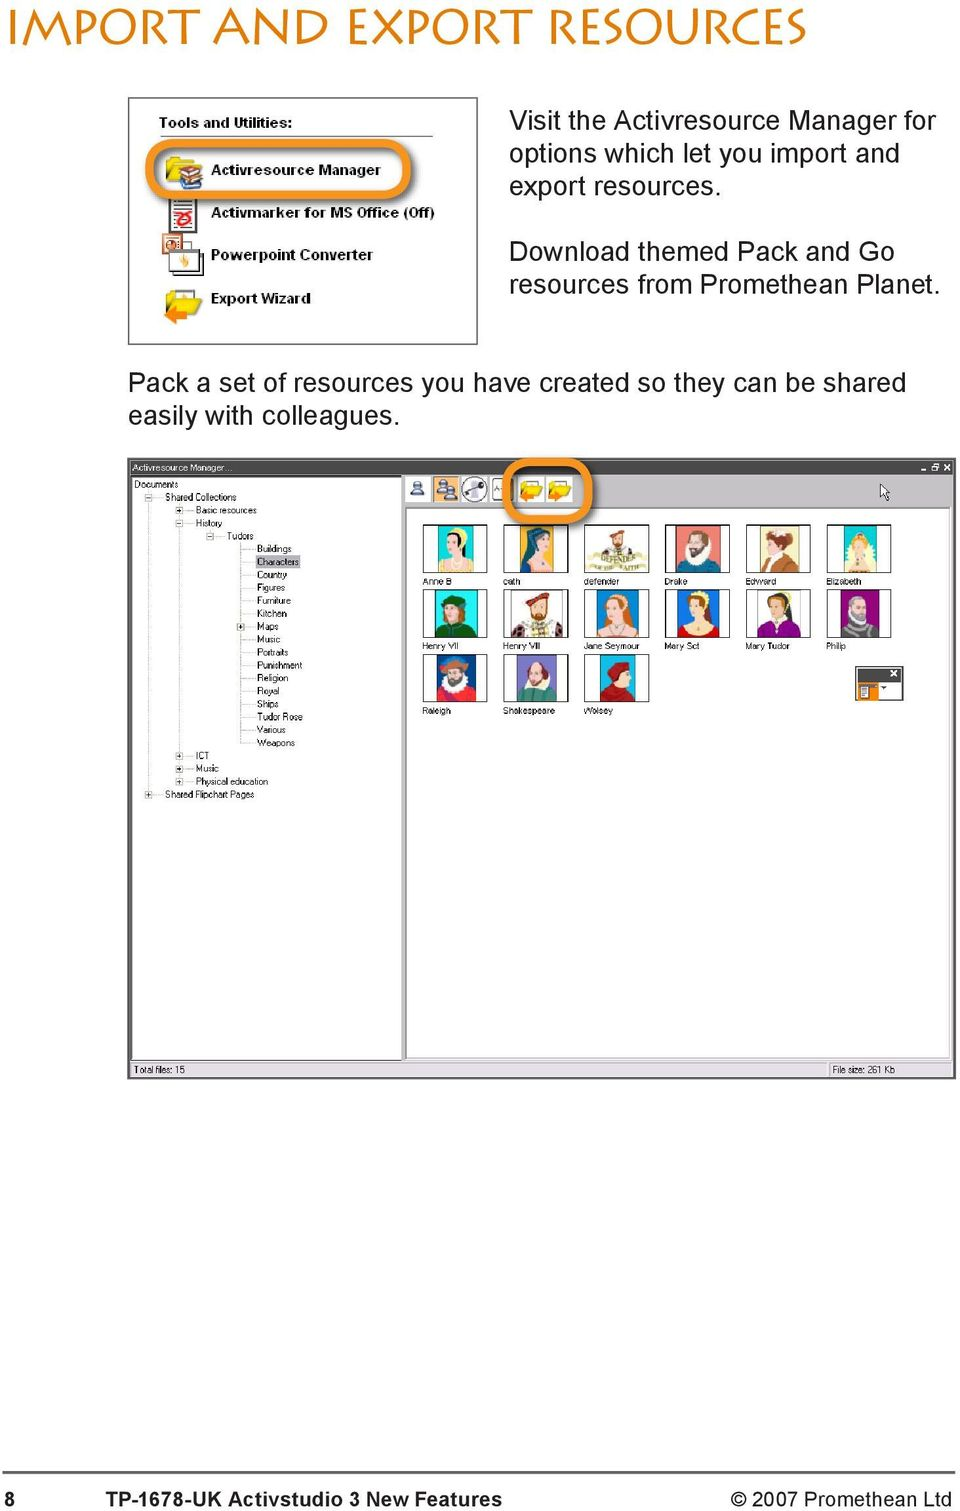 Download themed Pack and Go resources from Promethean Planet.